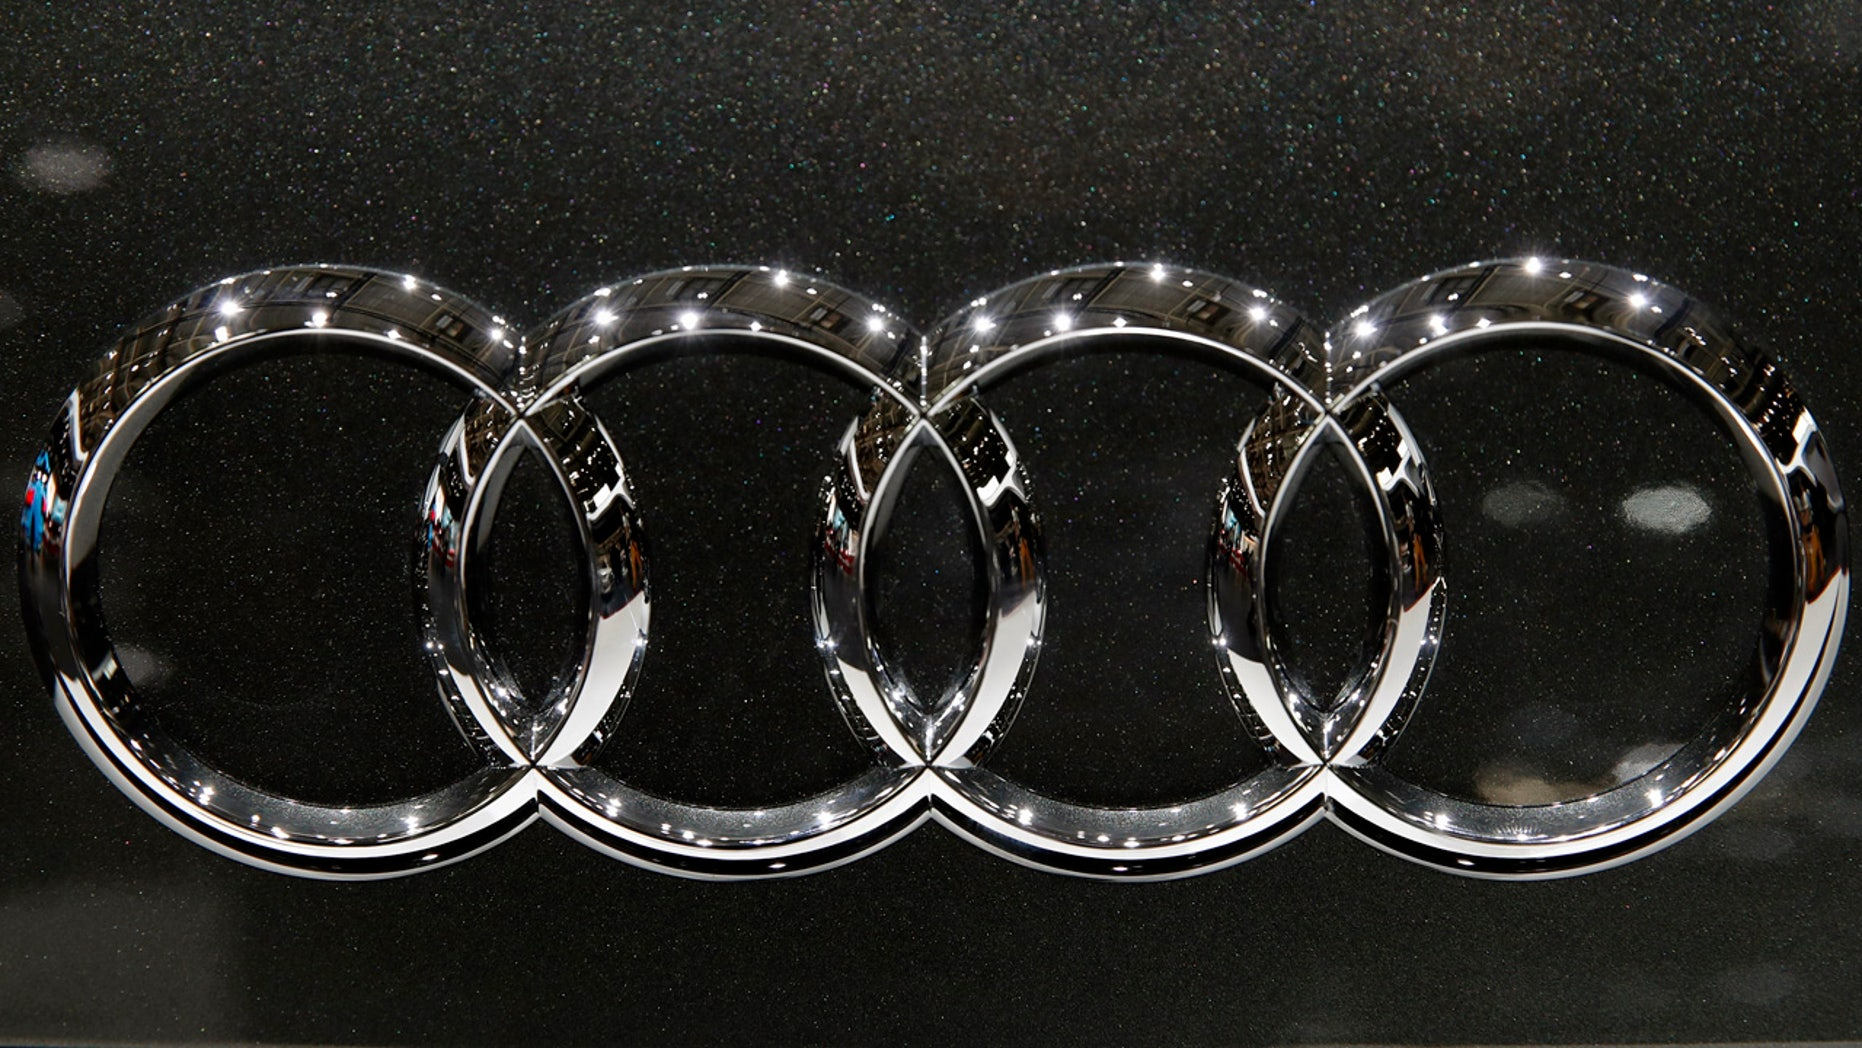 A grand jury in Michigan on Thursday indicted four engineering managers at German carmaker Audi in connection with a diesel emissions cheating scandal. (AP Photo/Christophe Ena, File)